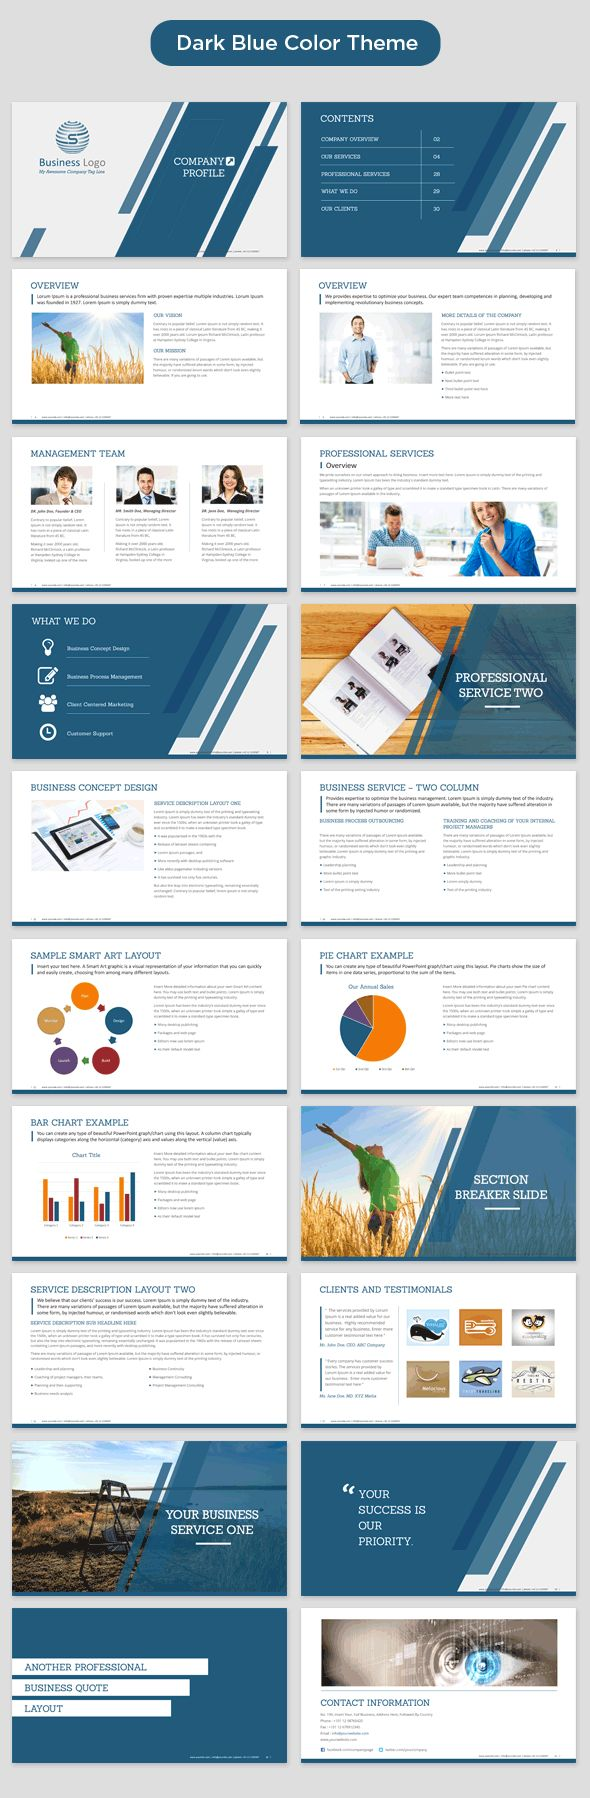 Business profile example free download cheaphphosting Choice Image